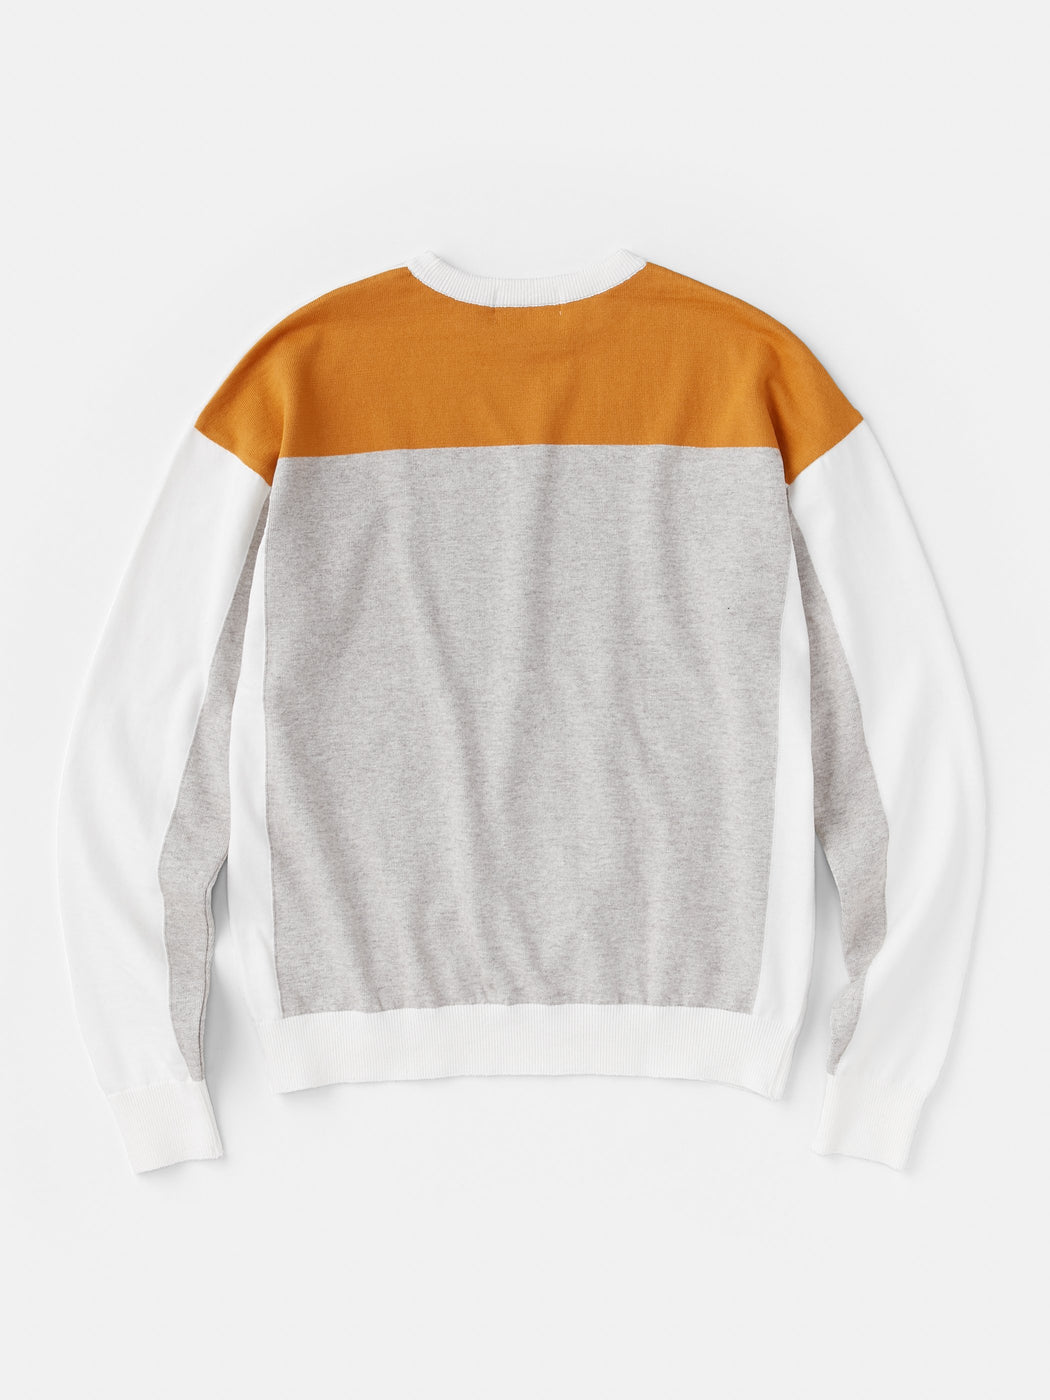 ALOYE G.F.G.S. Men's Cotton Knitted Sweater Off White-Heather Gray